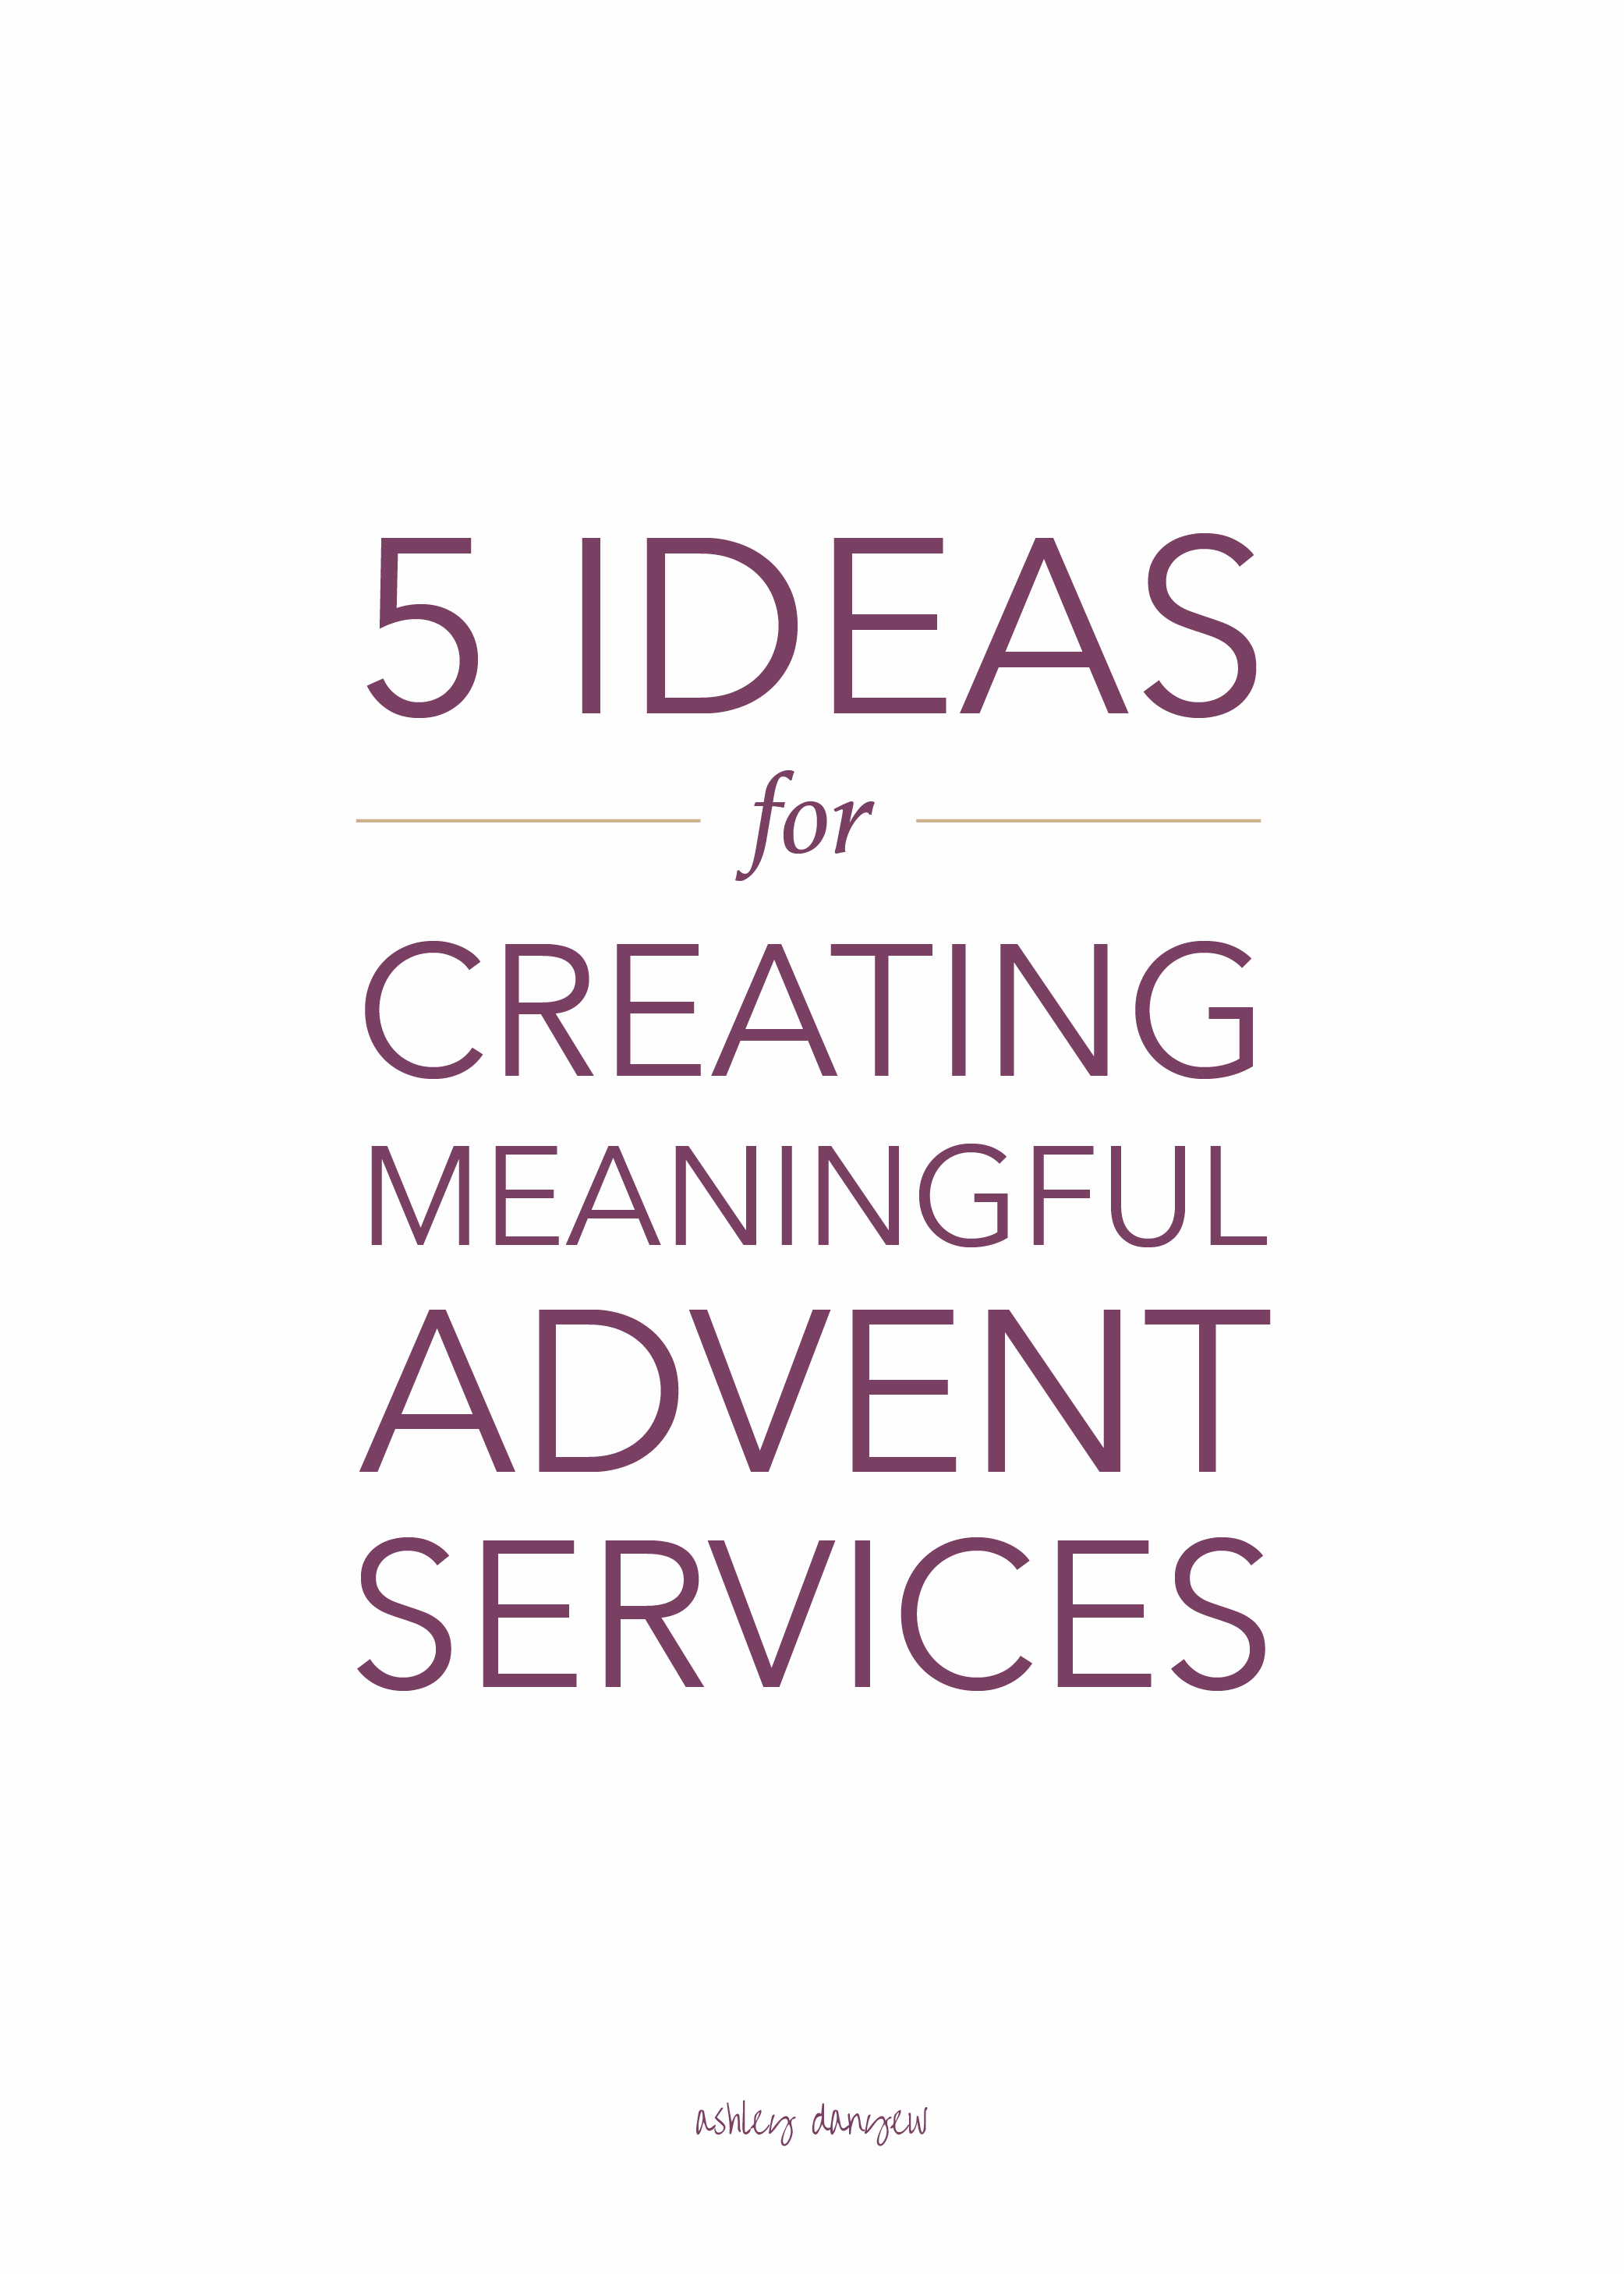 5-Ideas-for-Creating-Meaningful-Advent-Services-01.png